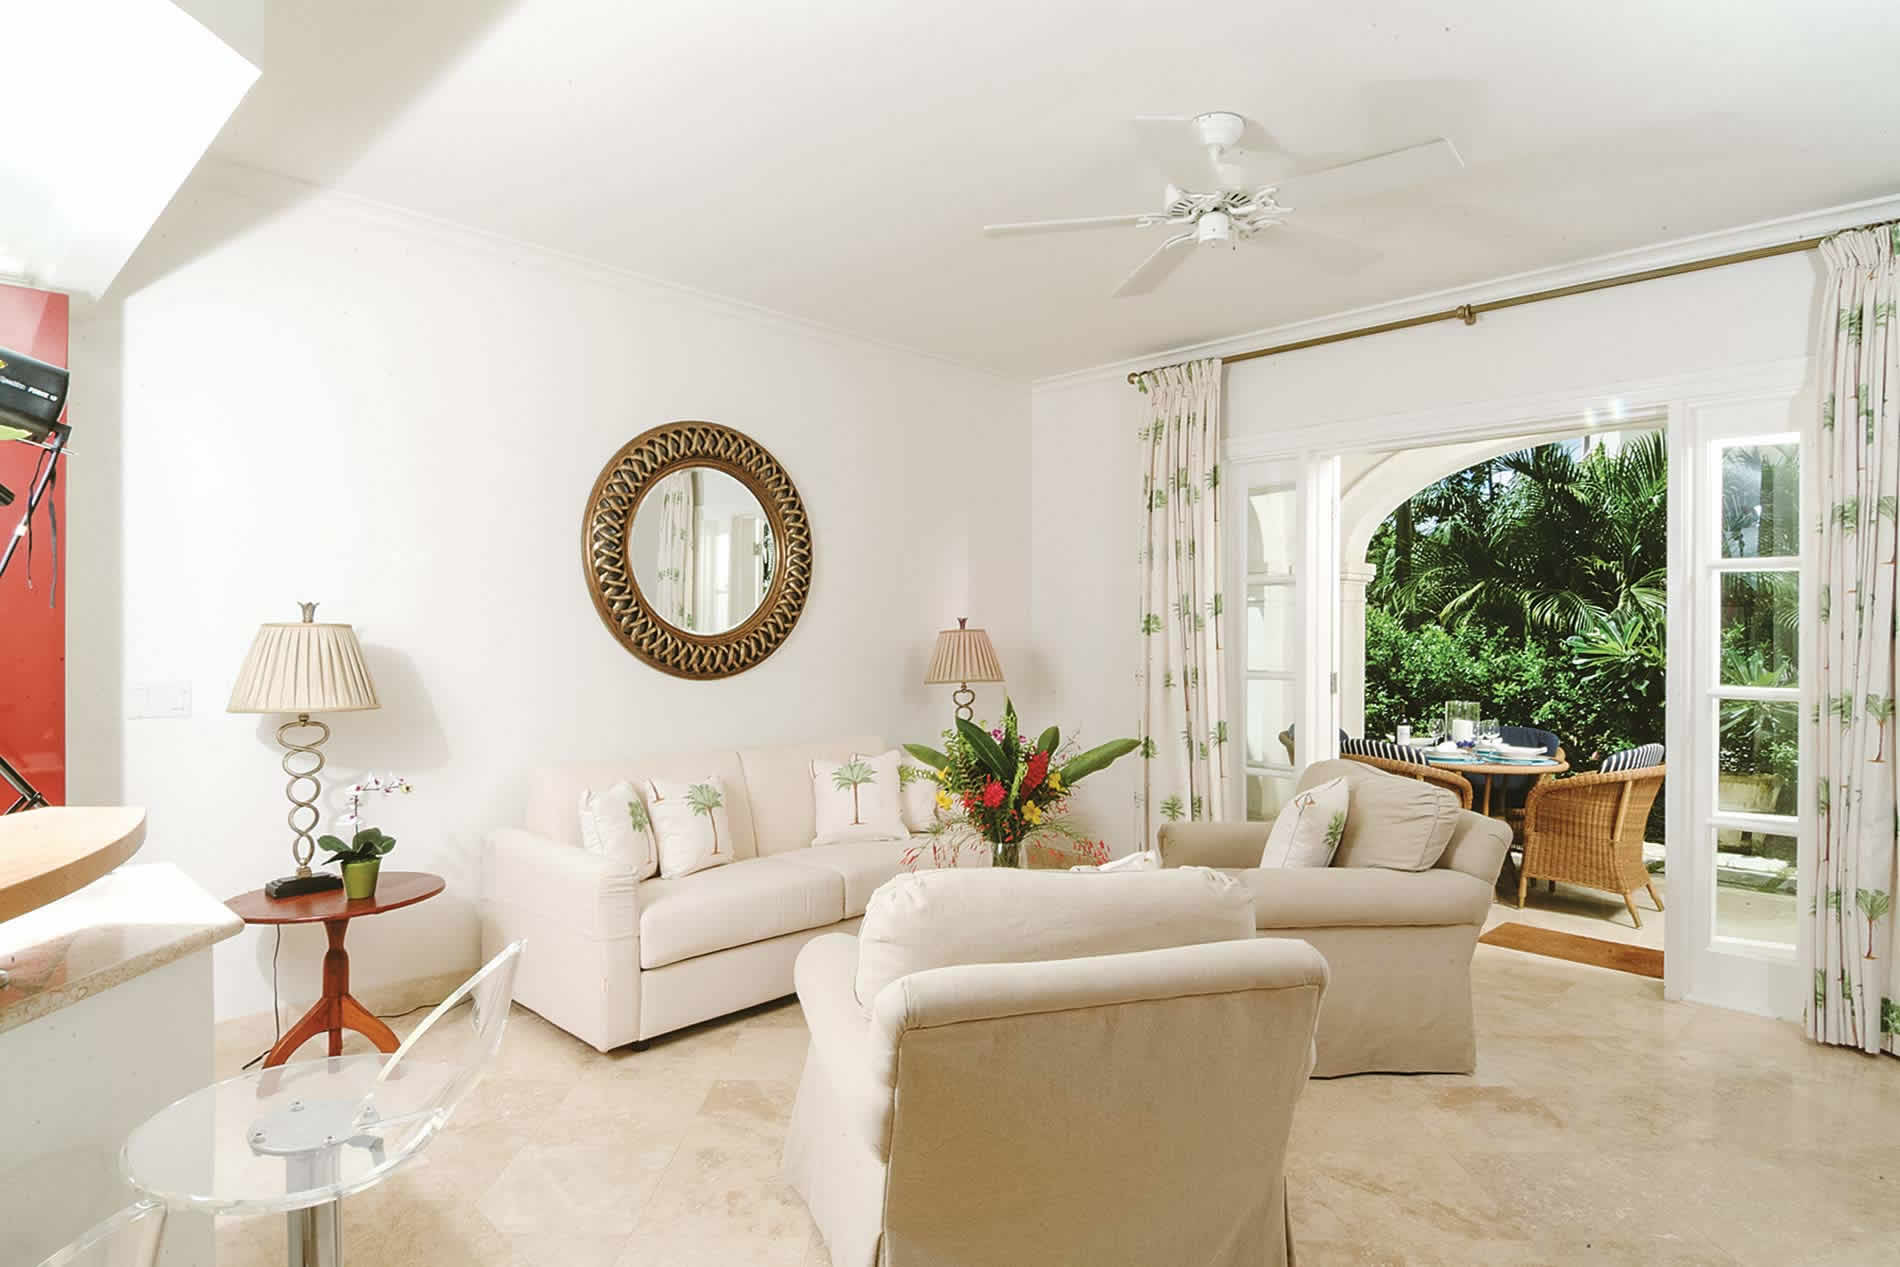 Apartment Moonshine in Schooner Bay - sleeps 2 people